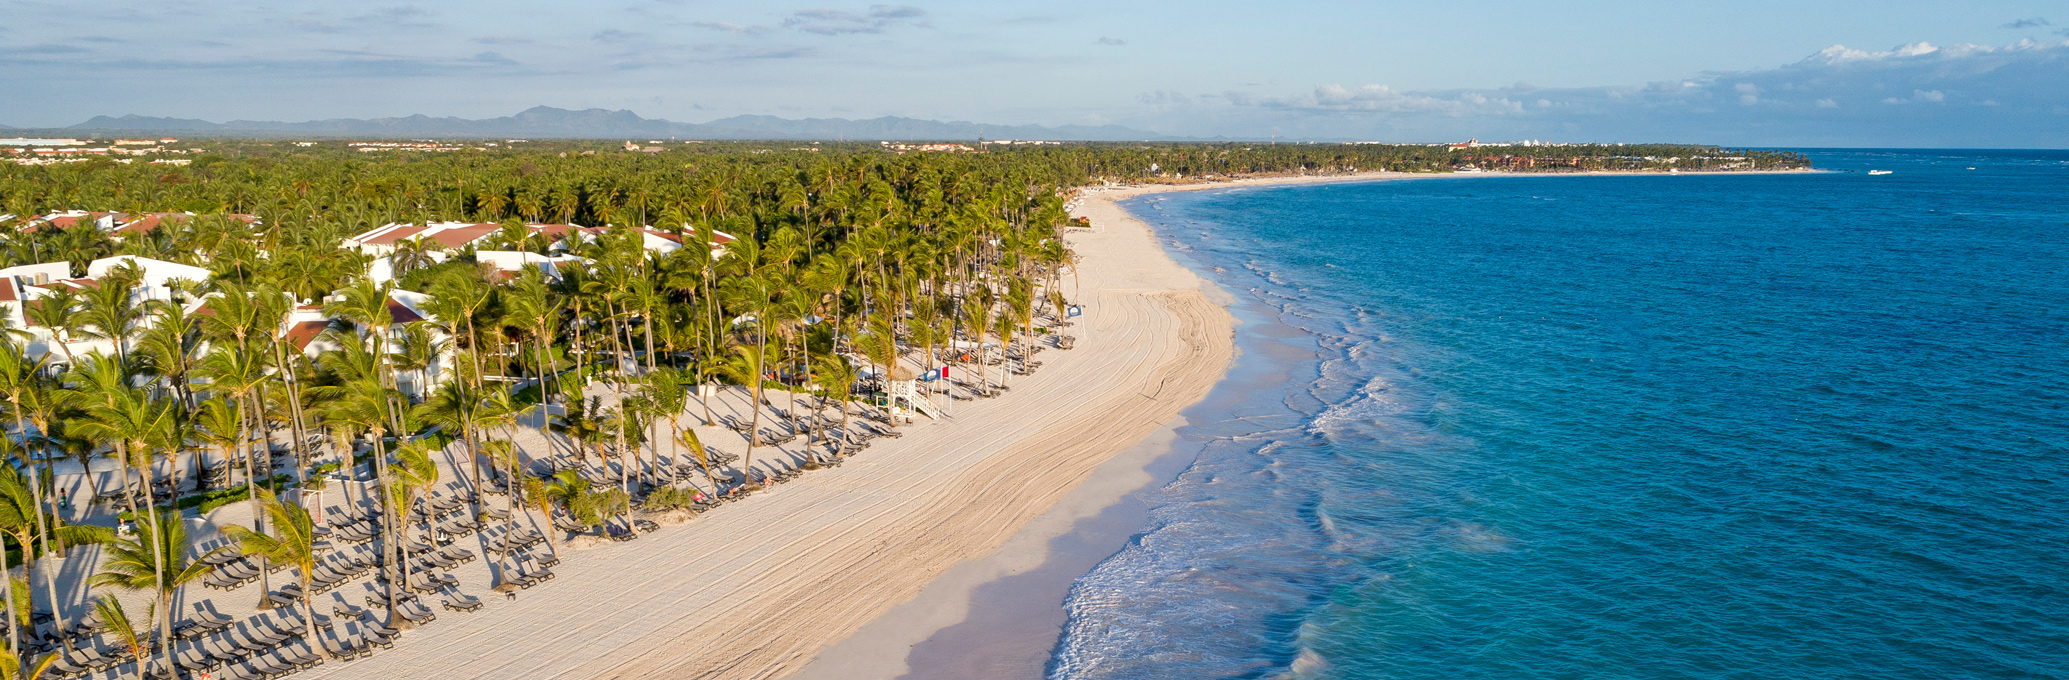 Occidental Punta Cana: mejor hotel Punta Cana